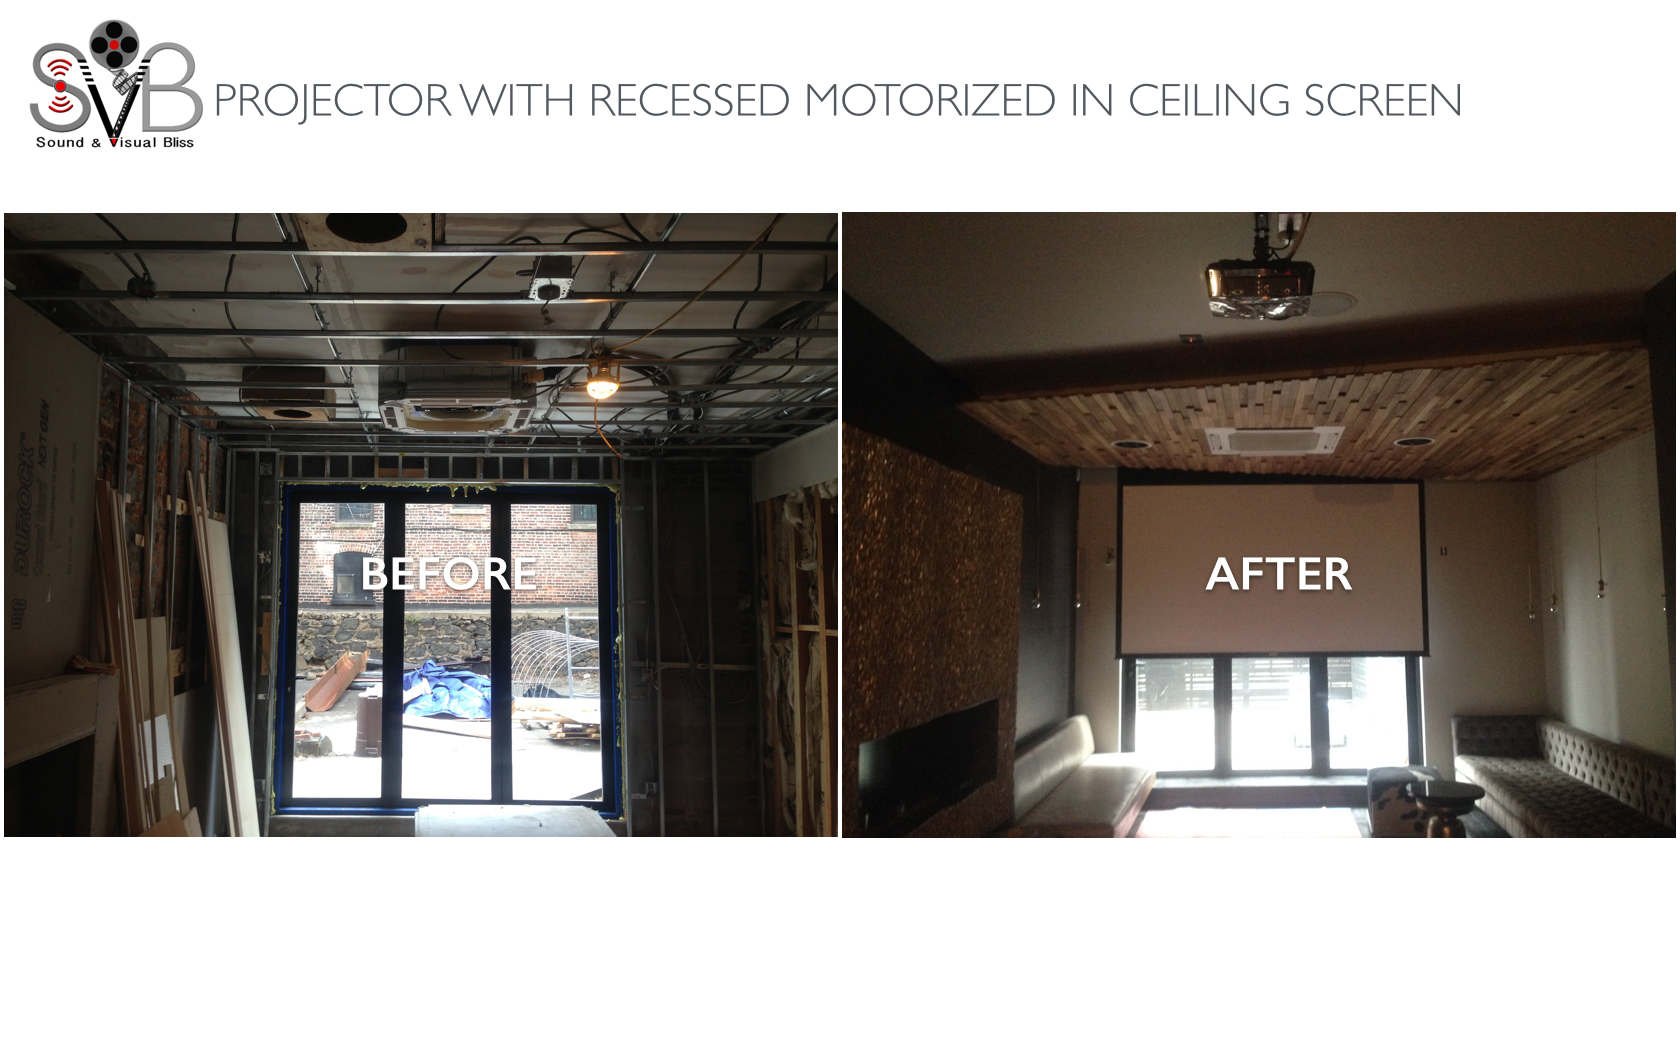 BAR & LOUNGE MOTORIZED IN CEILING SC